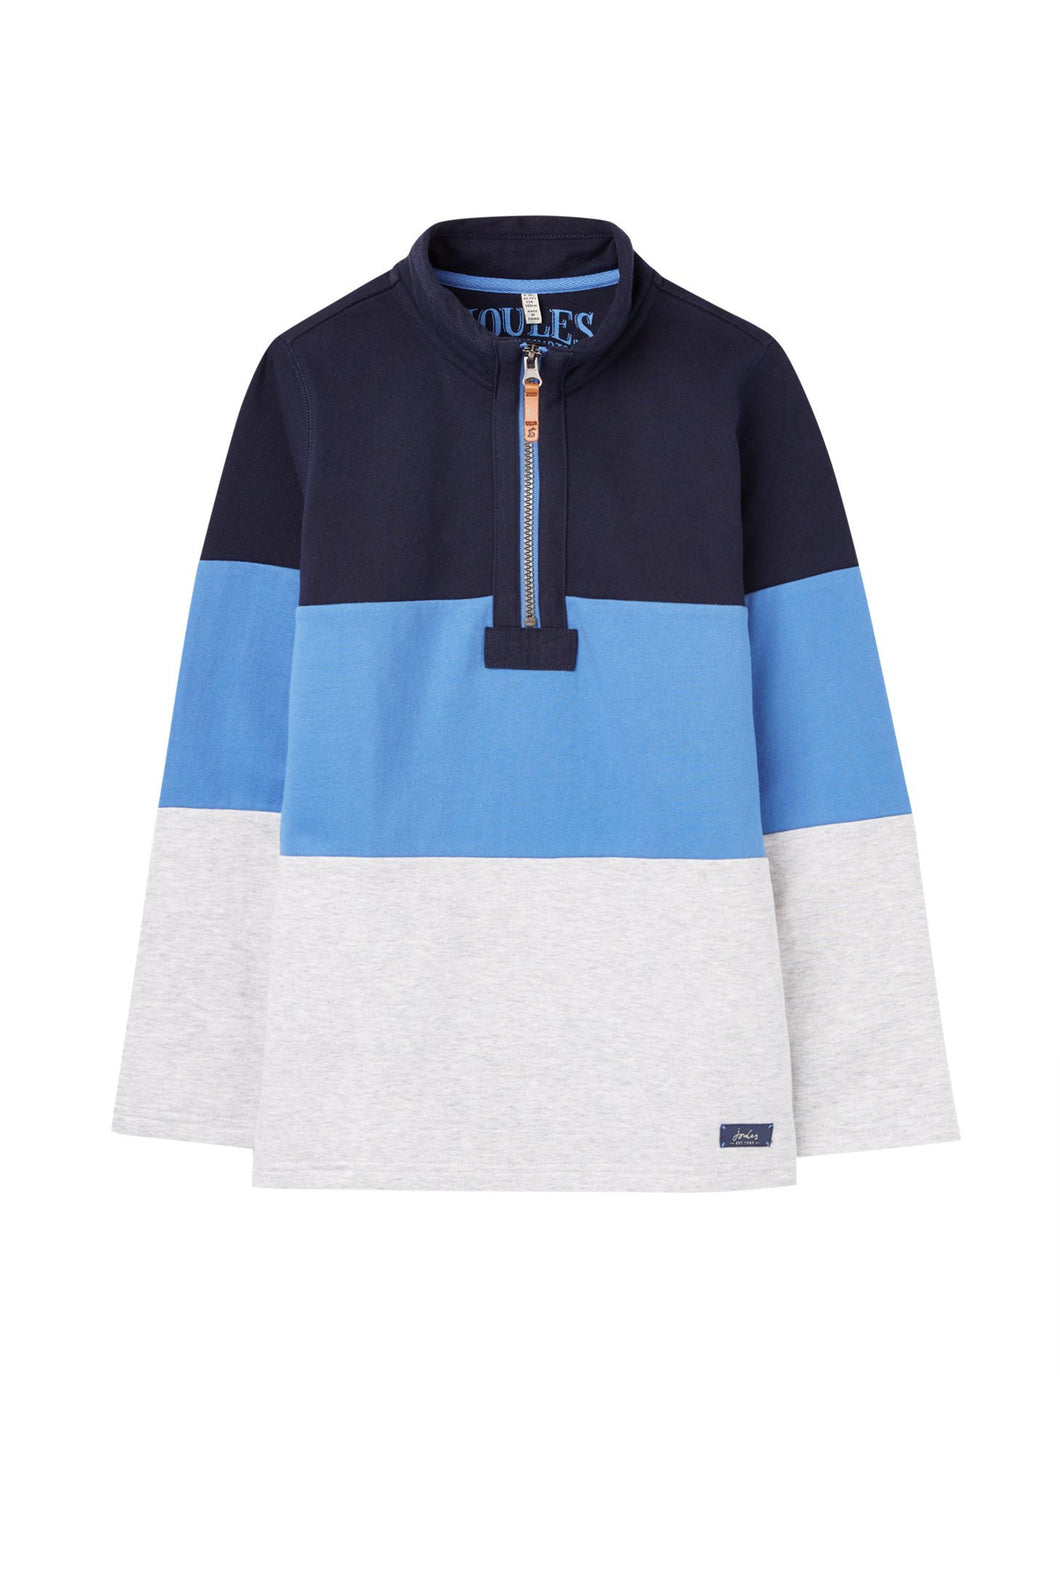 COLOR BLOCKED QUARTER ZIP SWEATSHIRT